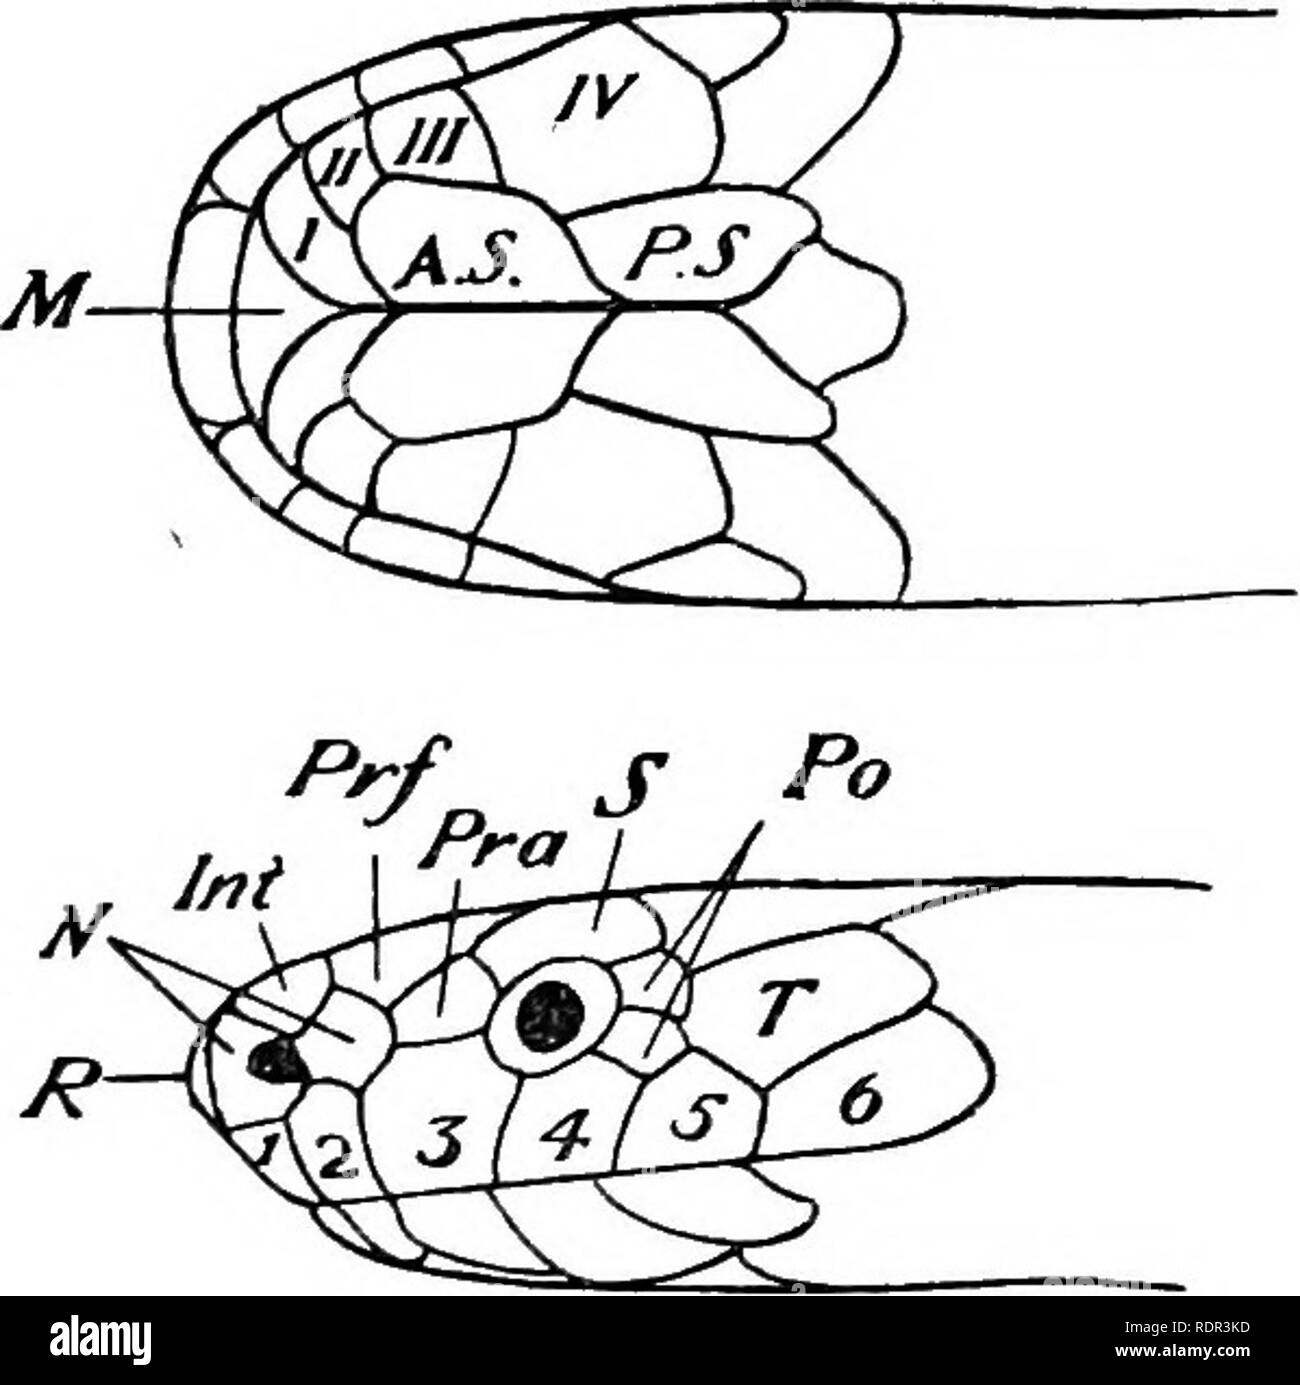 . The poisonous terrestrial snakes of our British Indian dominions, including Ceylon, and how to recognize them; with symptoms of snake poisoning and treatment. Snakes; Snakes. 36 THE POISONOUS SNAKES OF INDIA. Supplementary charac- ters.—Frcefrontals touch the internasal, posterior nasal, prseocular, supra- ocular, and frontal. Tem- poral 1, touching the 5th and 6 th supralabials. Supralahials 6. Anterior sublinguals touch 4 infra- labials. Posterior sublin- guals touch the 4th infra- labial. Infralabials.—The 4th is the largest of the series, and touches 2 scales behind. Scales in 13 rows in - Stock Image